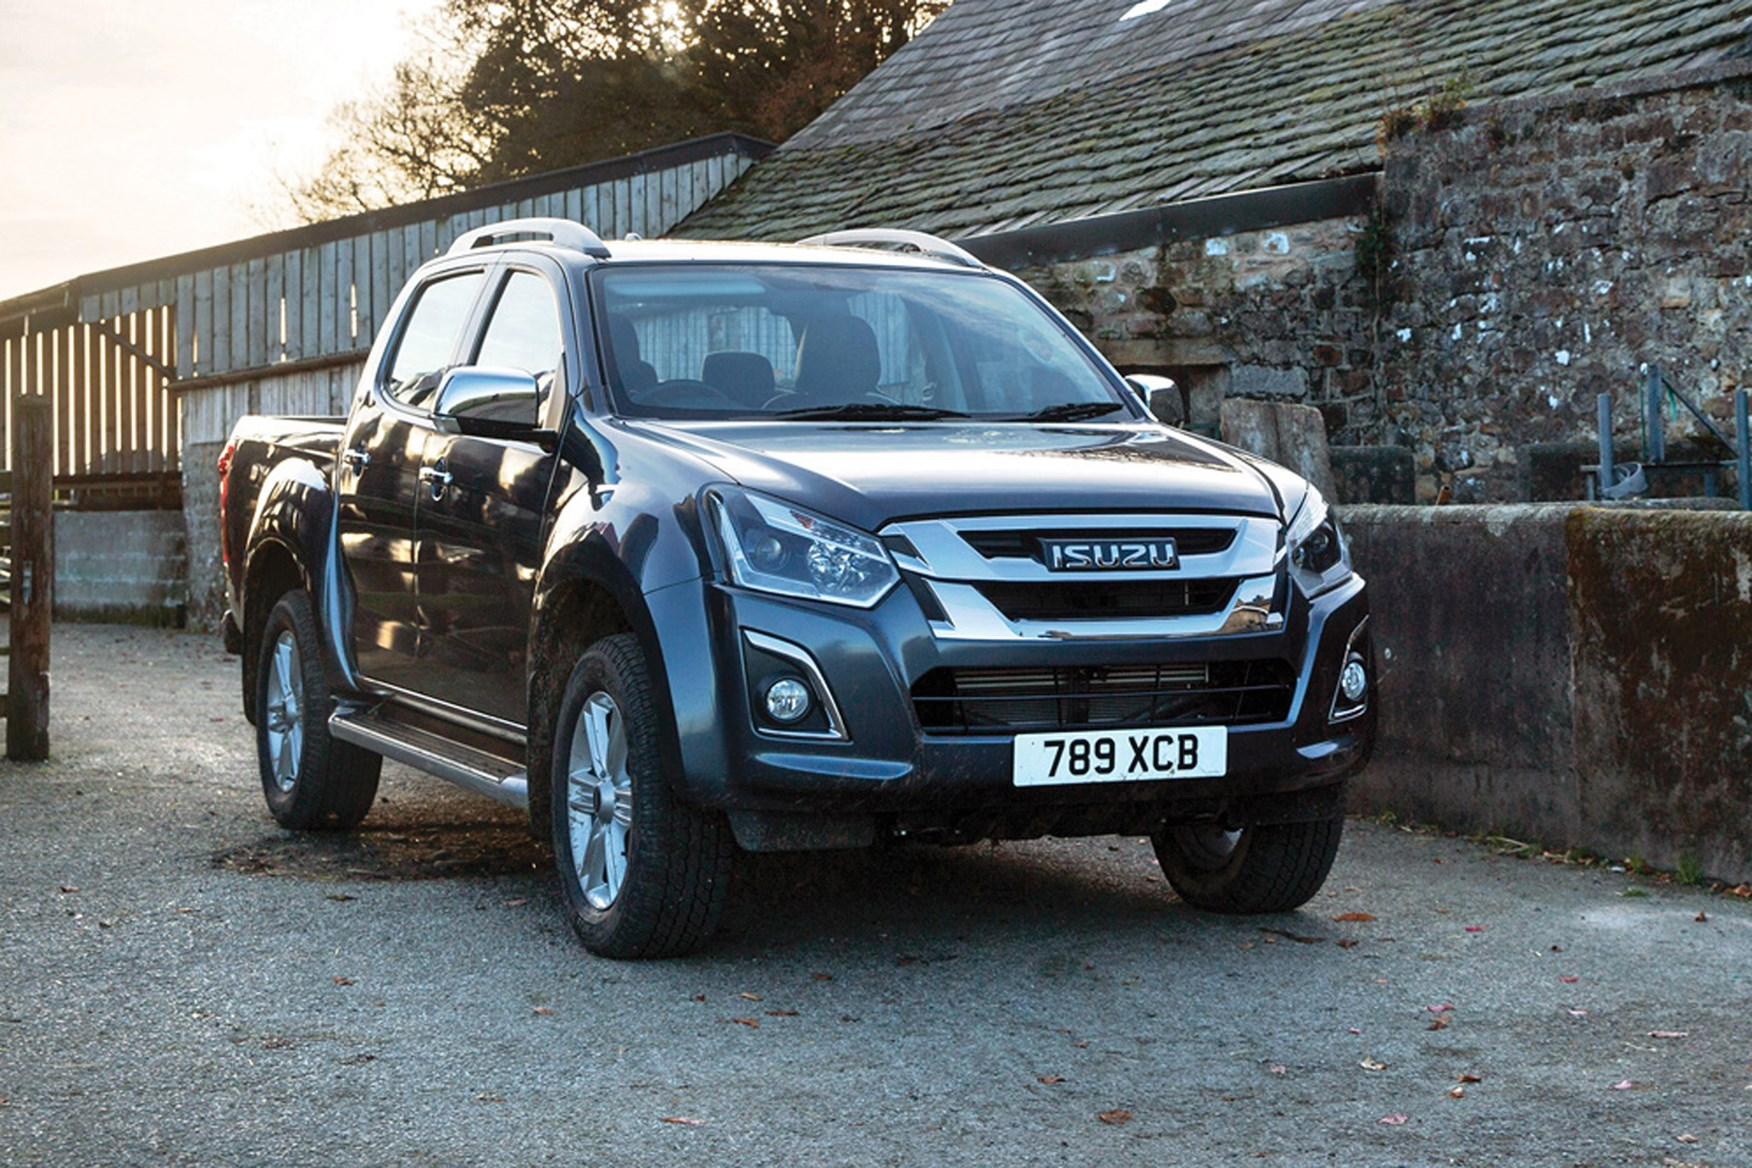 Isuzu D-Max full review on Parkers Vans - exterior